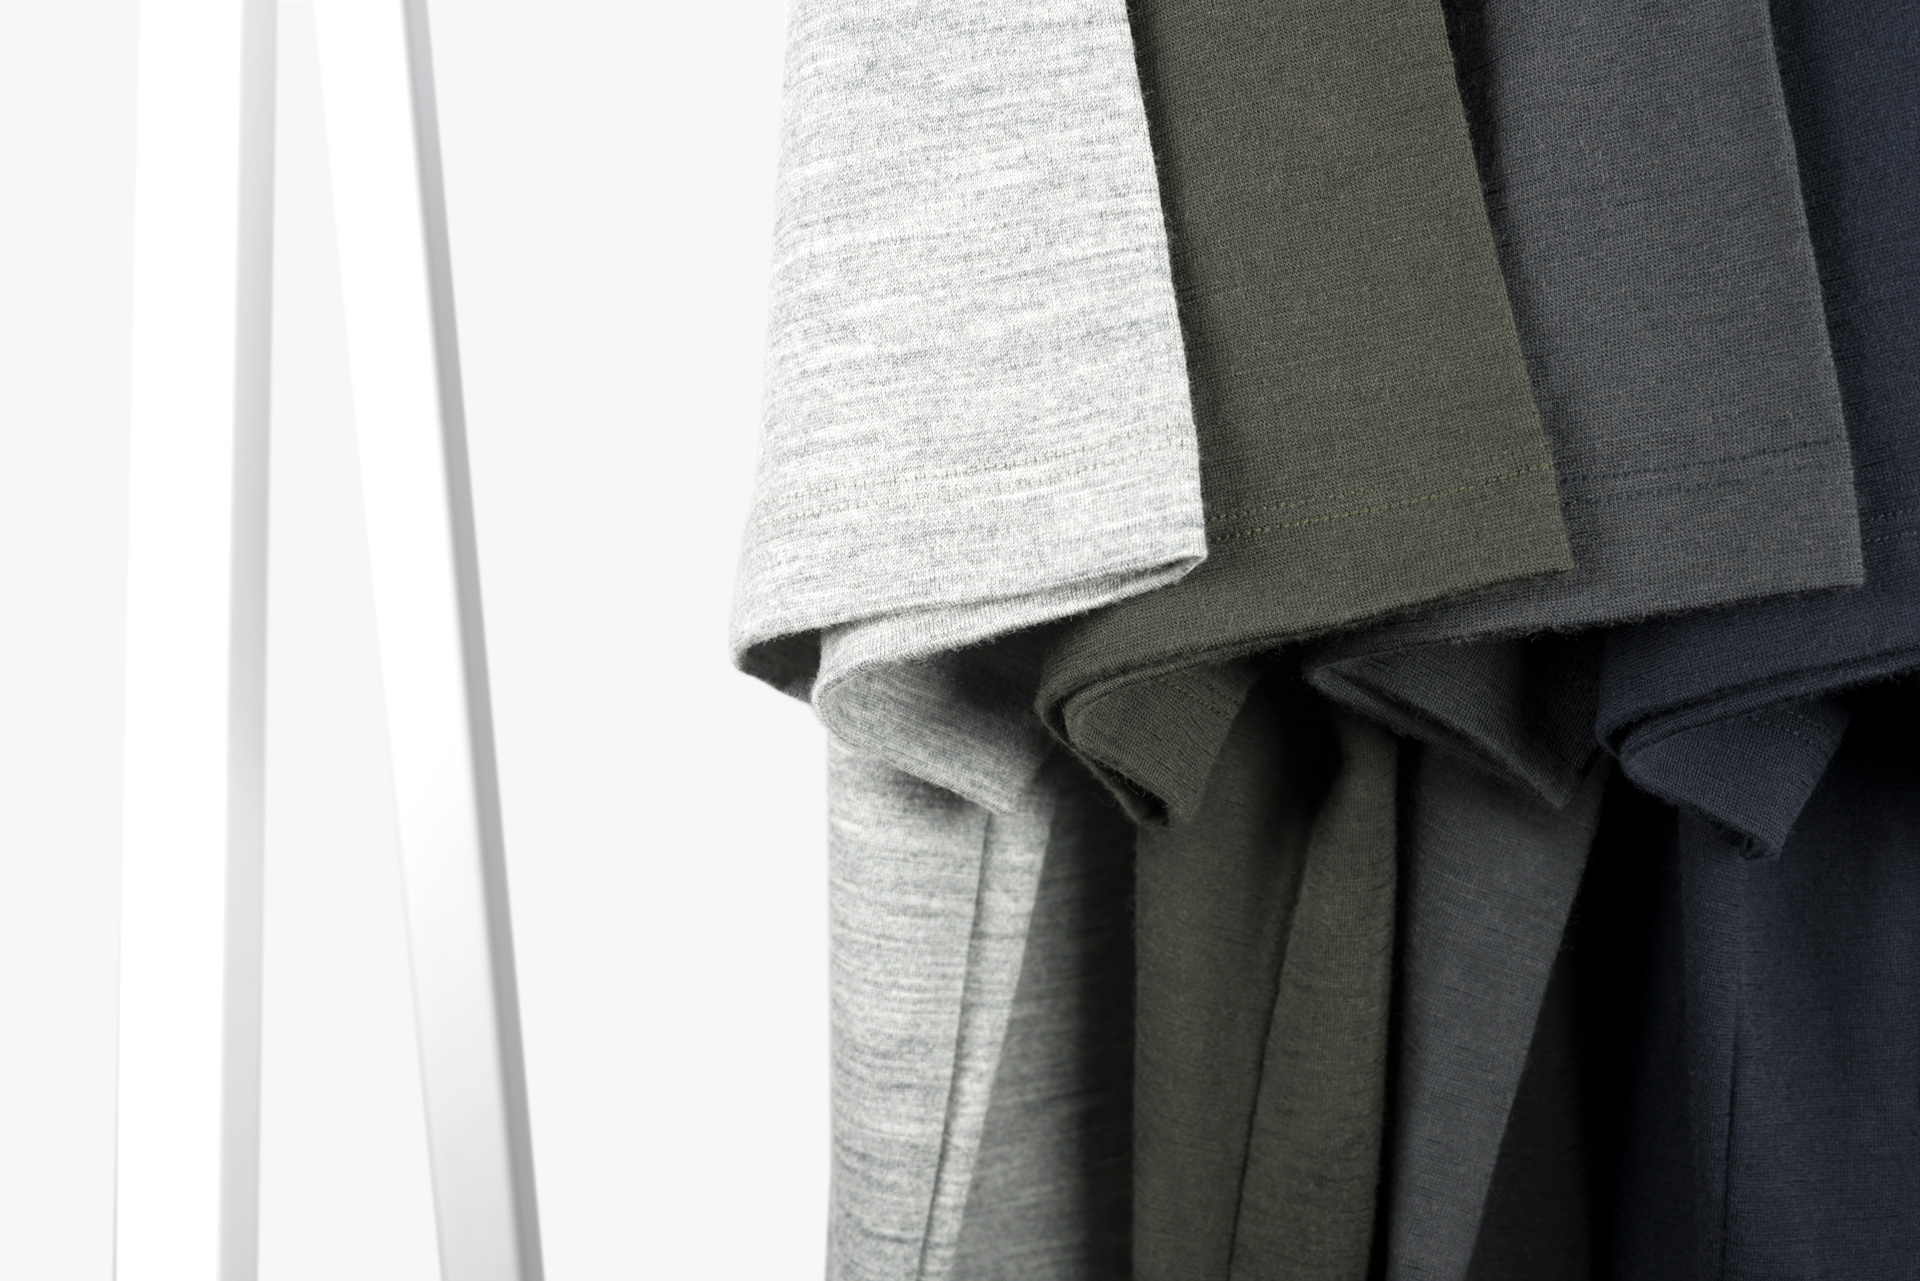 details, detail, sleeve, close-up, quality, merino, wool